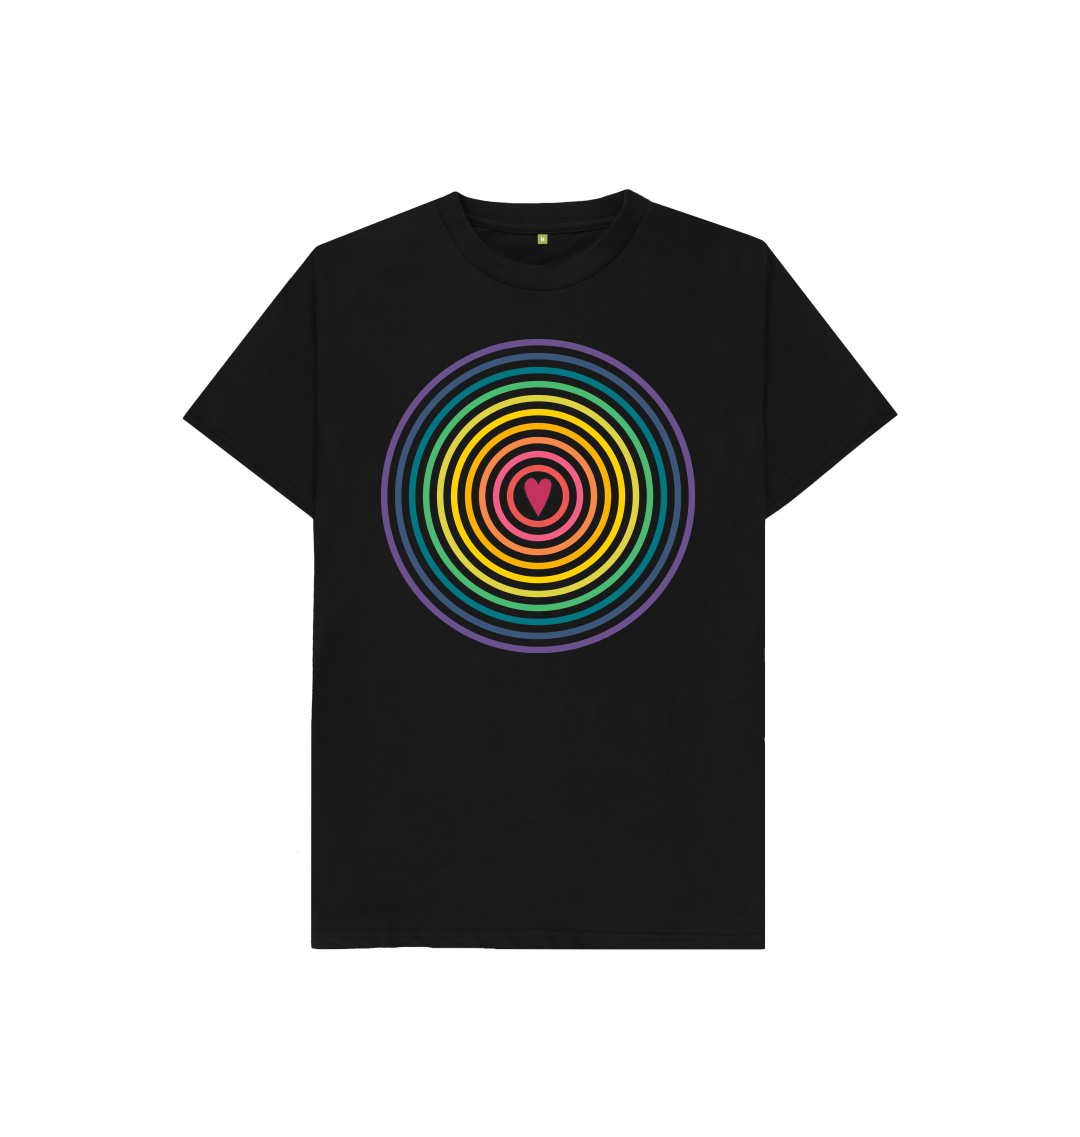 The Ripple Effect of Kindness Kids Tee (Various Colours) Kind Shop 11